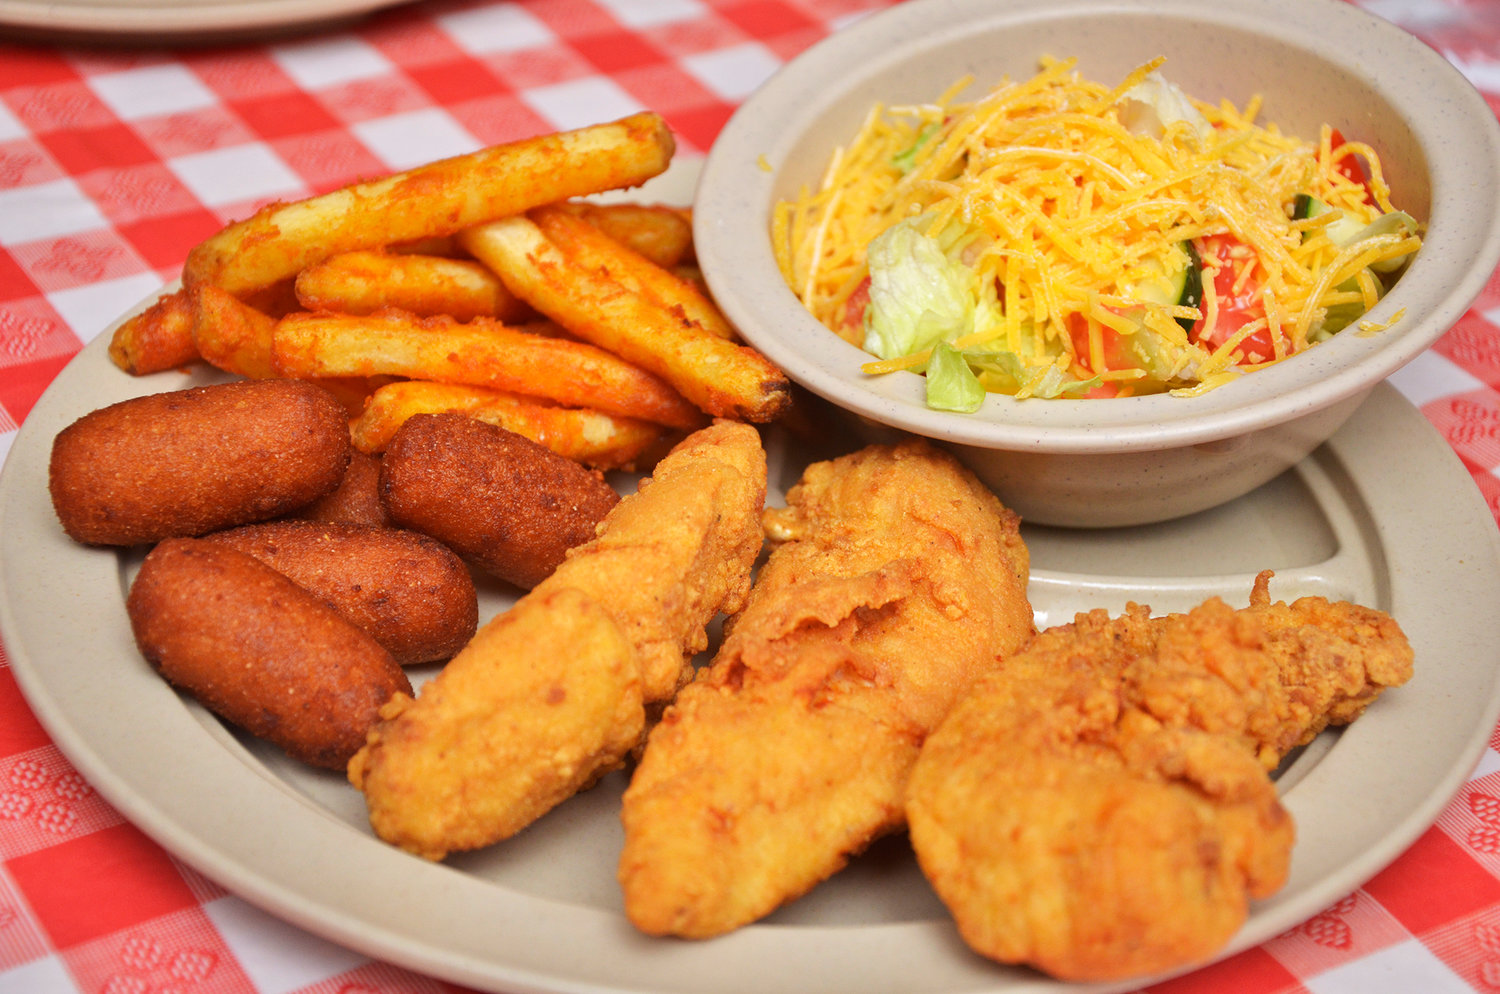 This is one of the standard menu items that's available everyday. Diners have choices of several chicken or pork dishes, with classic southern sides to complete the meal.